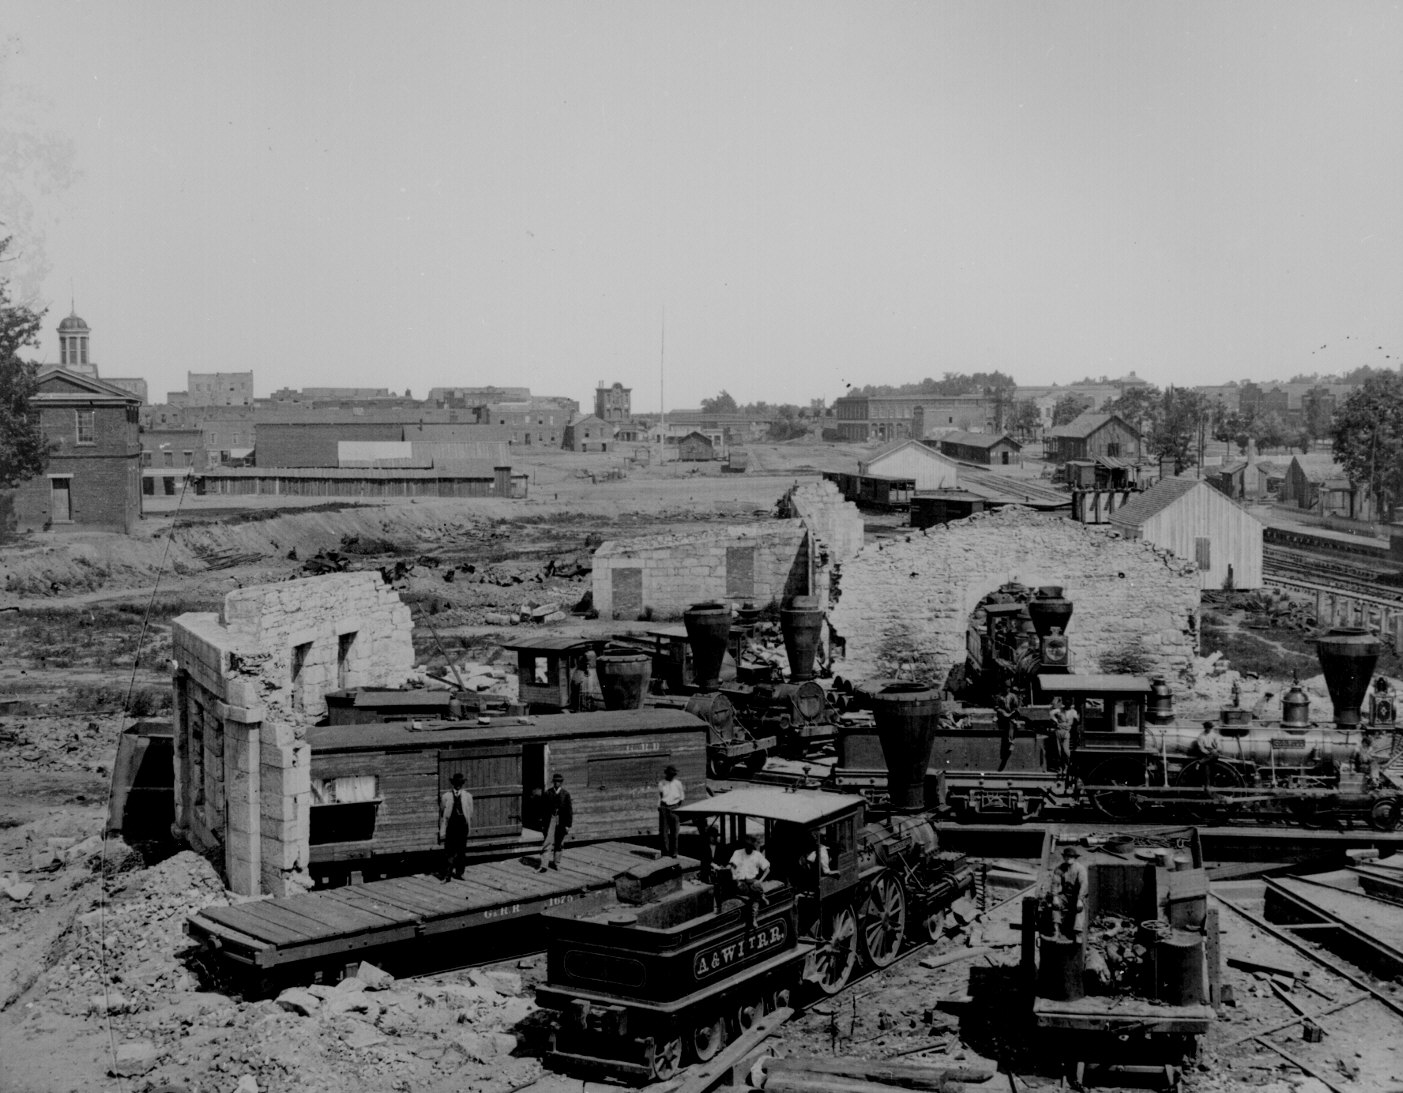 Building after the civil war clipart image library stock Civil War Photos   National Archives image library stock